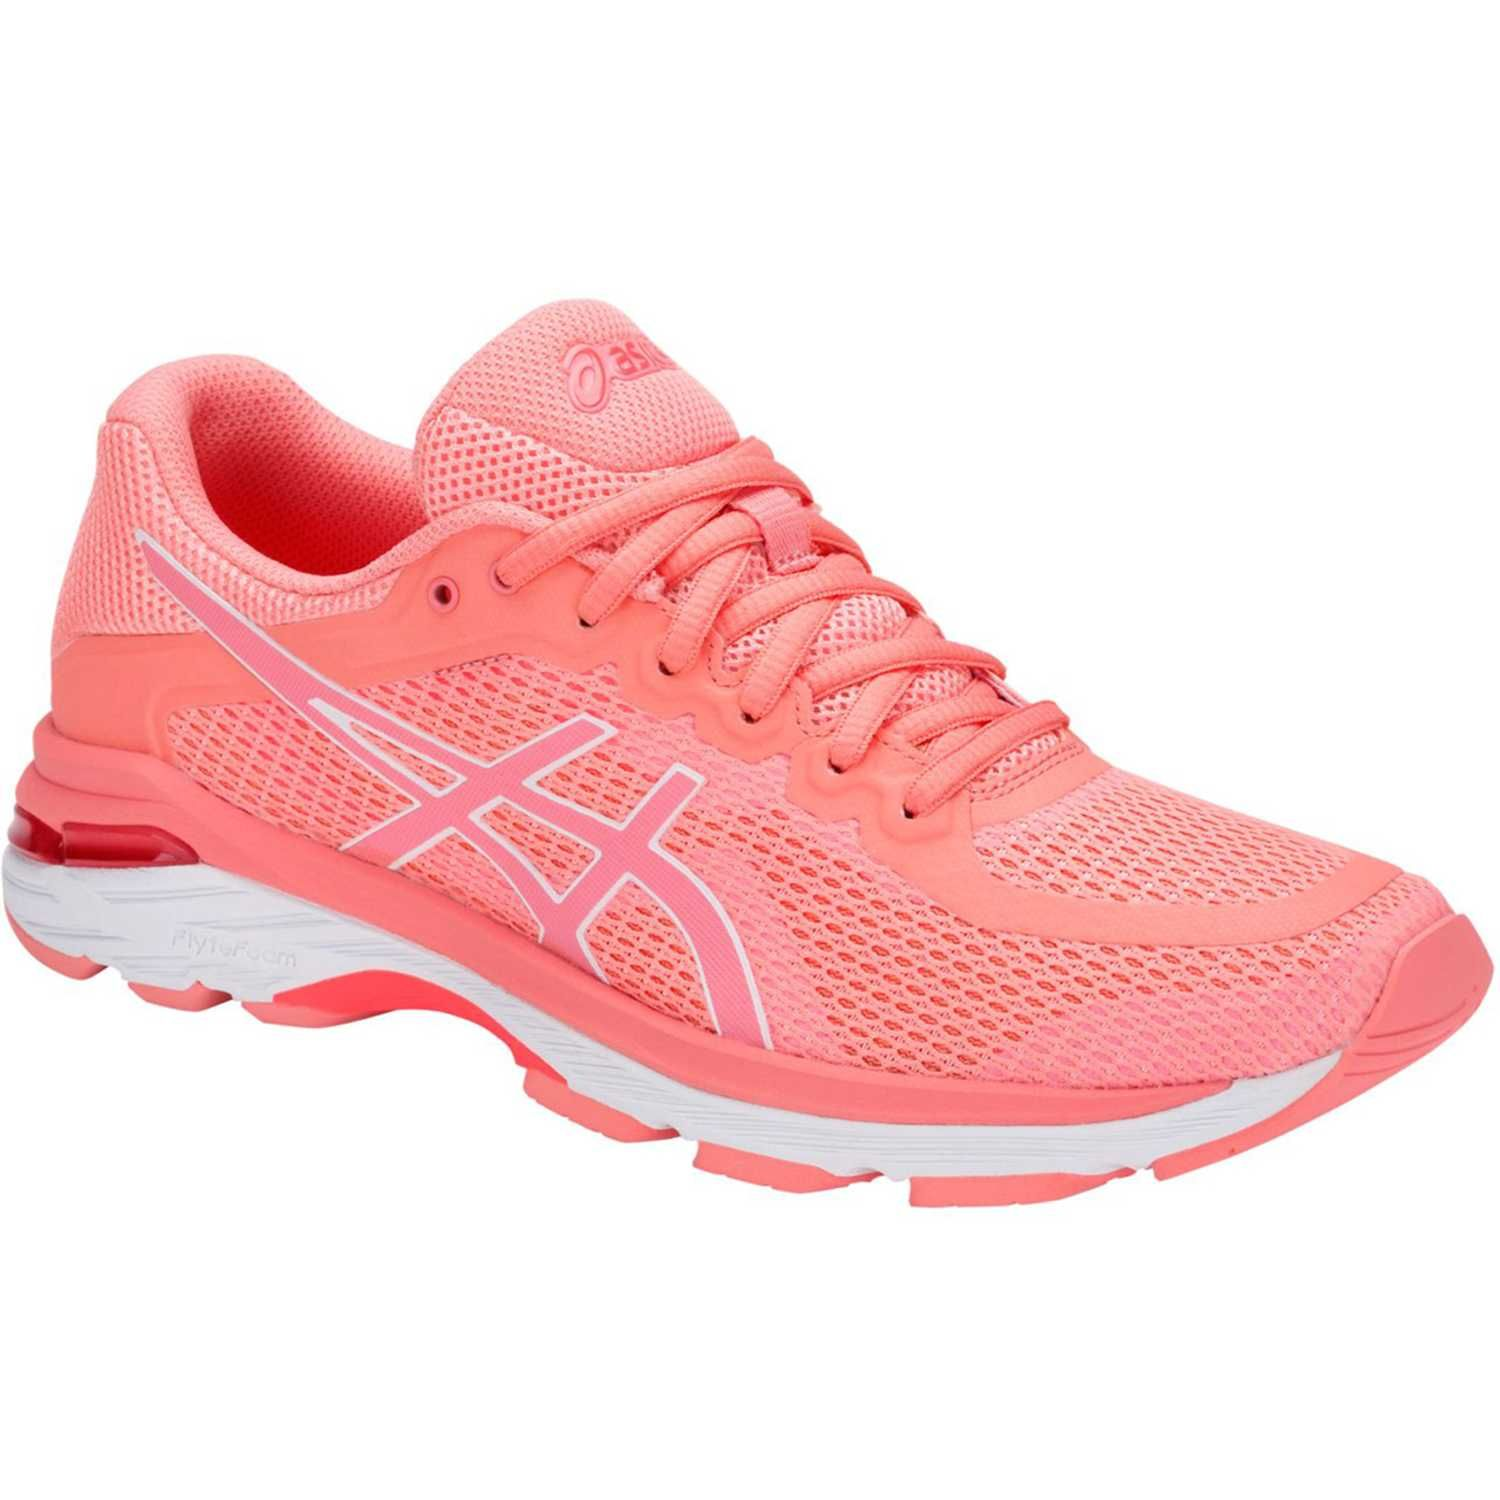 asics women's neutral cushioned running shoes mujer